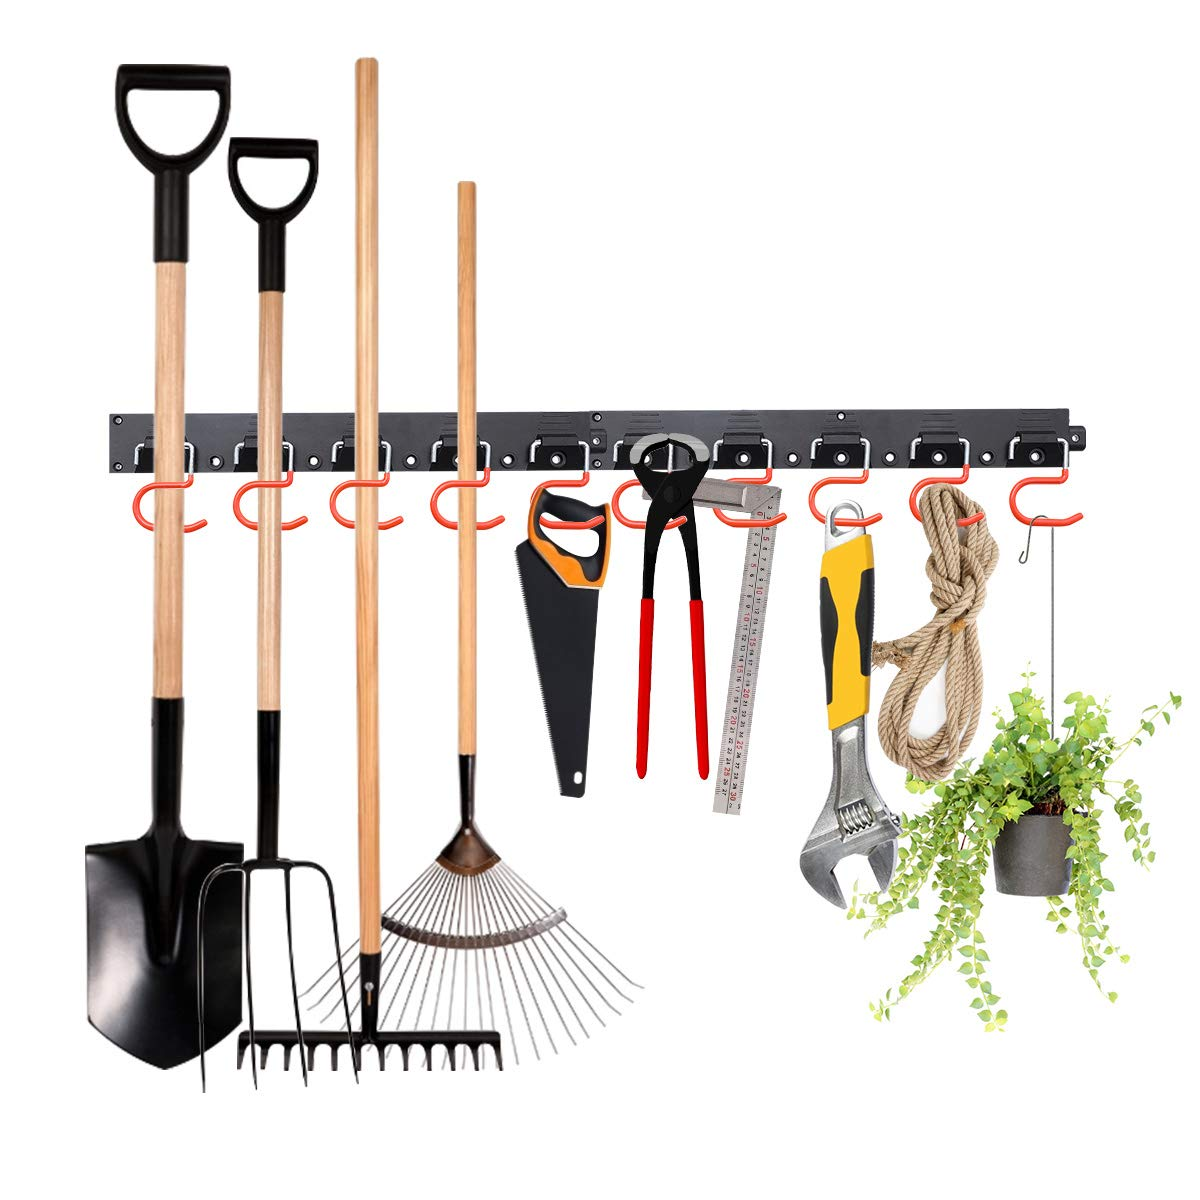 MOHOO-Adjustable-Storage-System-64-Inch-Wall-Holders-for-Tools-Wall-Mount-Tool-Organizer-Garage-Organizer-Garden-Tool-Organizer-Heavy-Duty-Tools-Hanger-with-4-Rails-16-Hooks